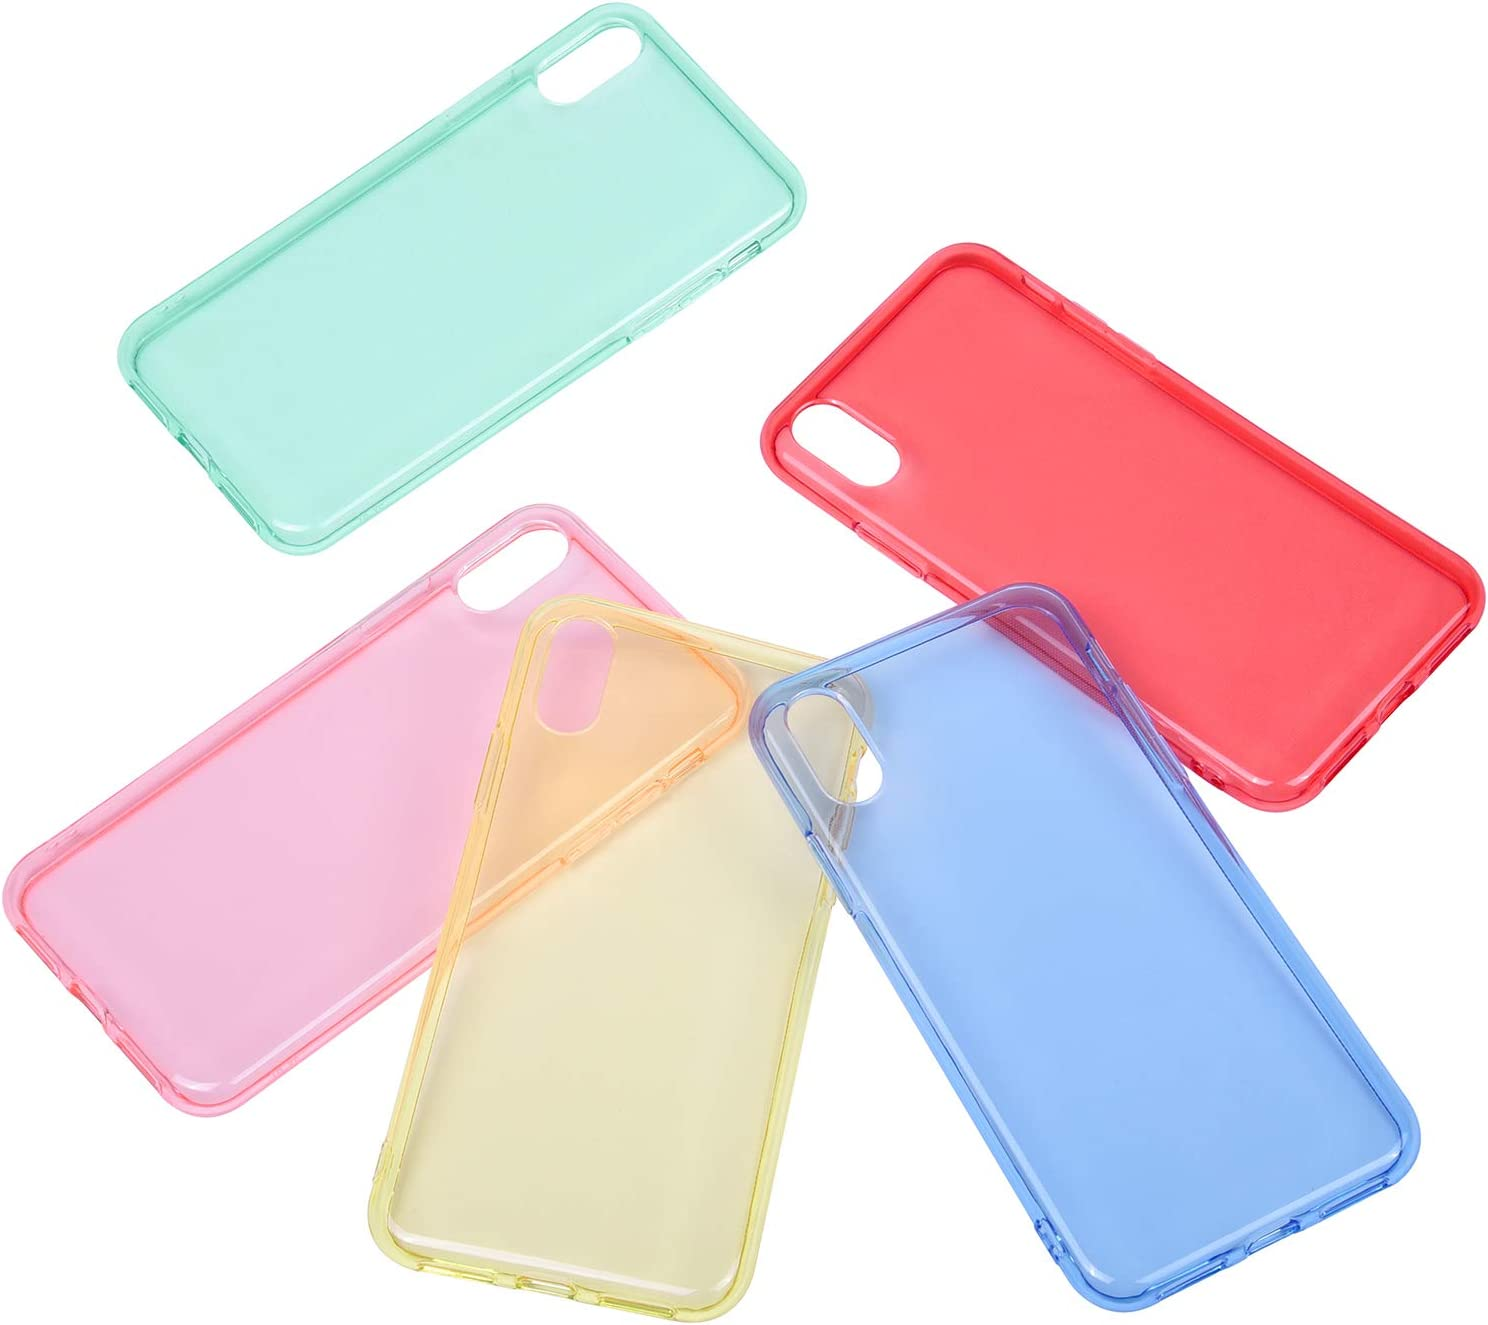 Wisdompro iPhone Xs Case, iPhone X Case, Bundle of 5 Pack Extra Thin Slim Jelly Soft TPU Gel Protective Case Cover for Apple iPhone X XS 10(Blue, Aqua Blue, Hot Pink, Yellow, Red)- Transparent Color